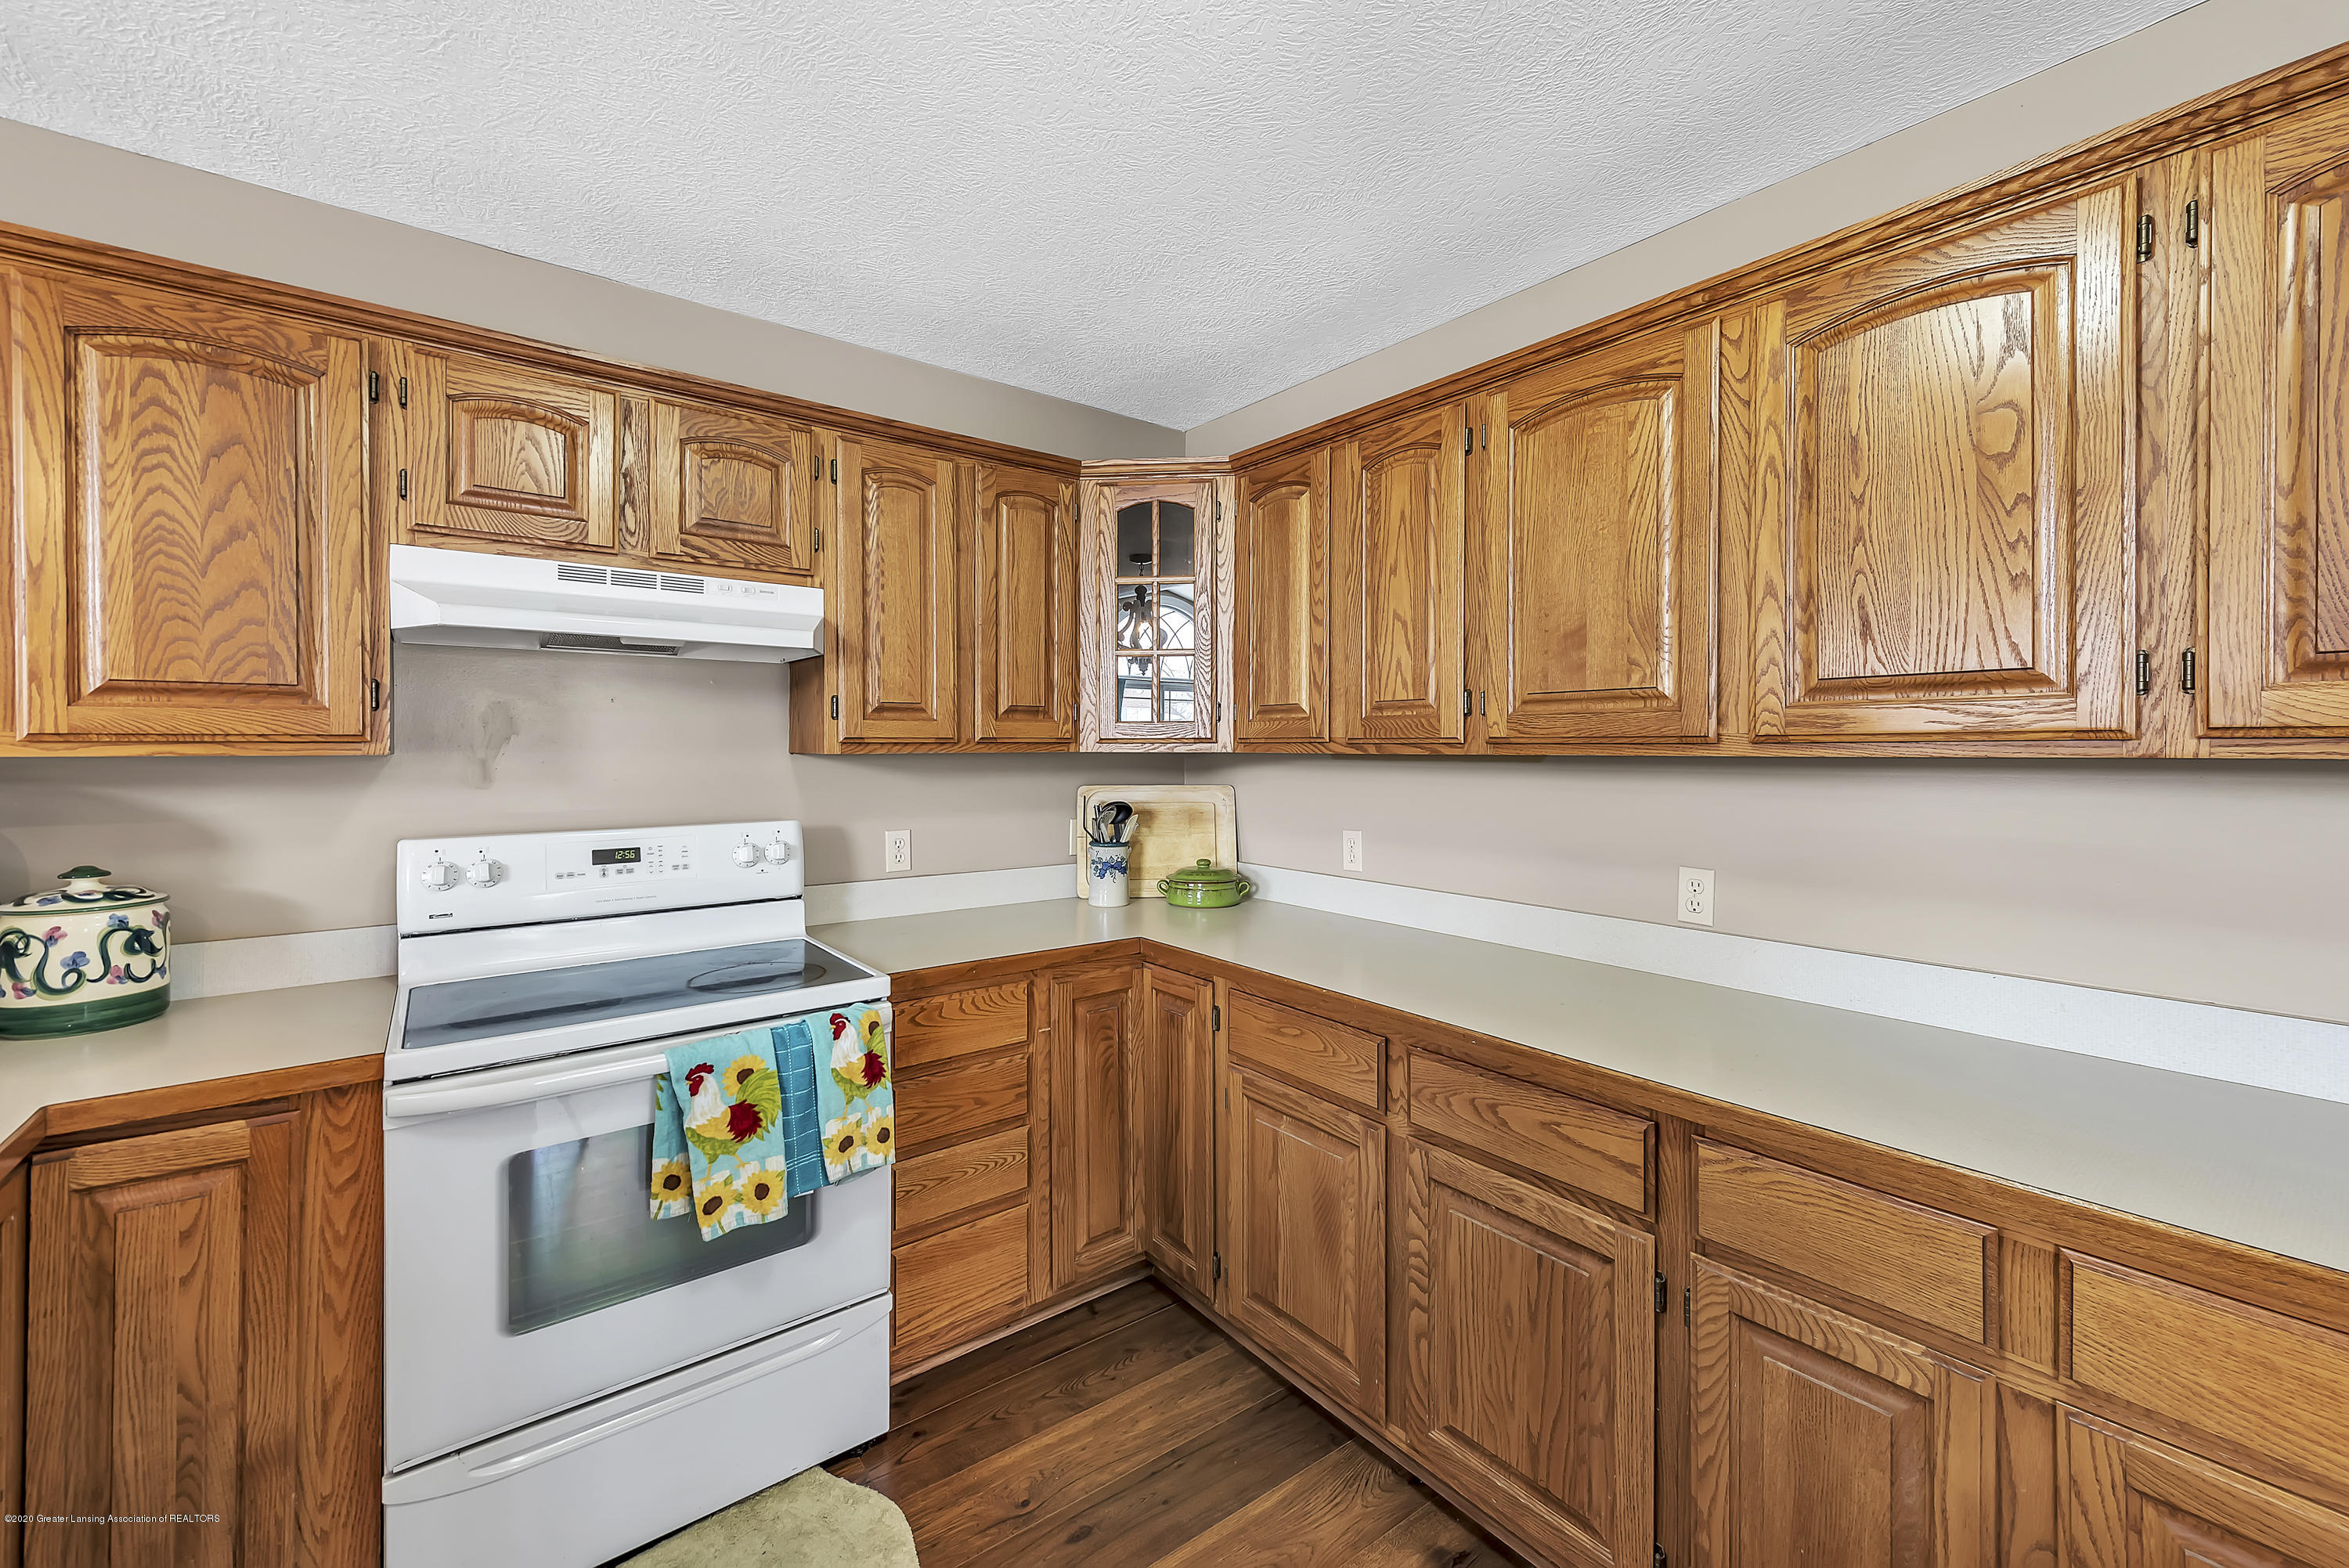 2450 Featherstone Dr - 2450-Featherstone-Dr-WindowStill-Real-Es - 14